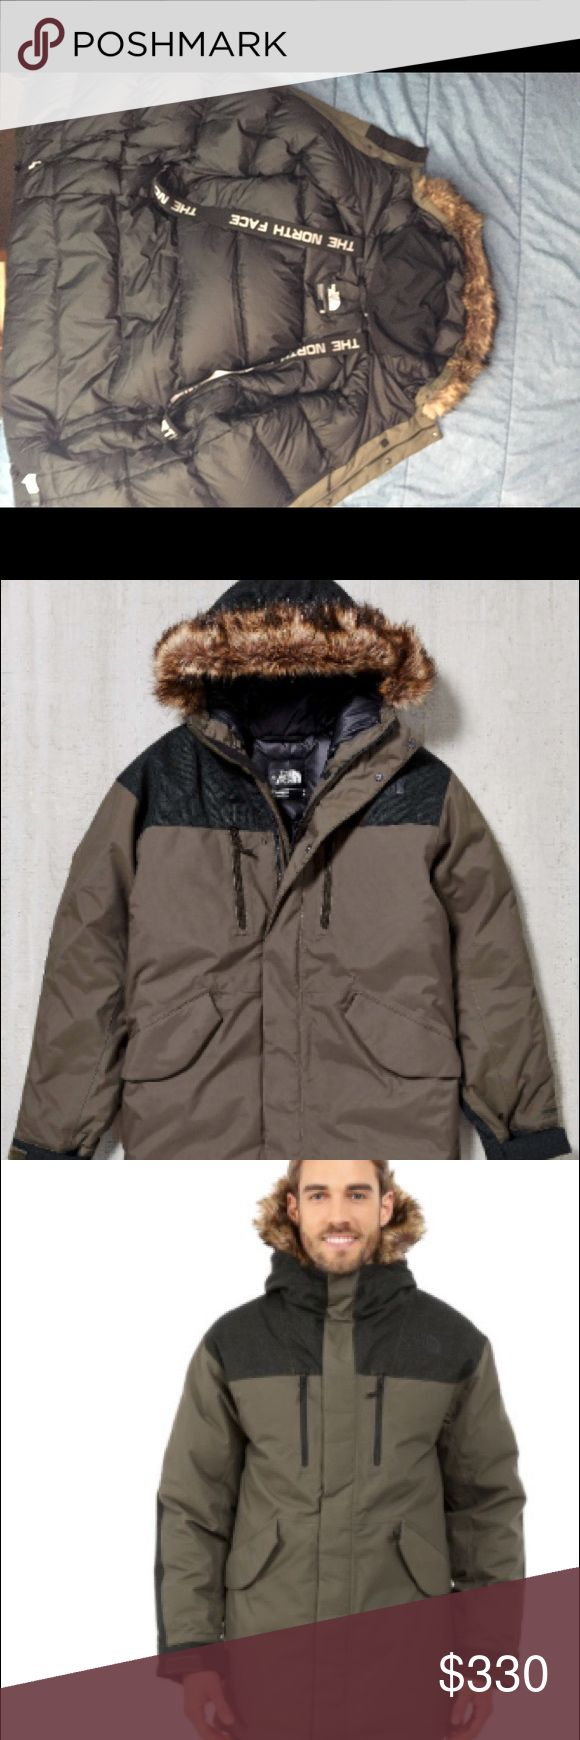 The North Face Mount Logan Parka Taupe Green Med -The north face mount Logan parka (retail $400 USD)  -Taupe green with black patches on shoulders and elbows -Parka is brand new with original tags -Model in the picture is 6ft tall with a 40 inch chest in a size medium    Features include  - 550 fill down insulated with waterproof canvas - logo harness for easy carrying -neck gaiter that ticks into collar when not in use -flex good with removable fur brim -water resistant zips on chest -zip…